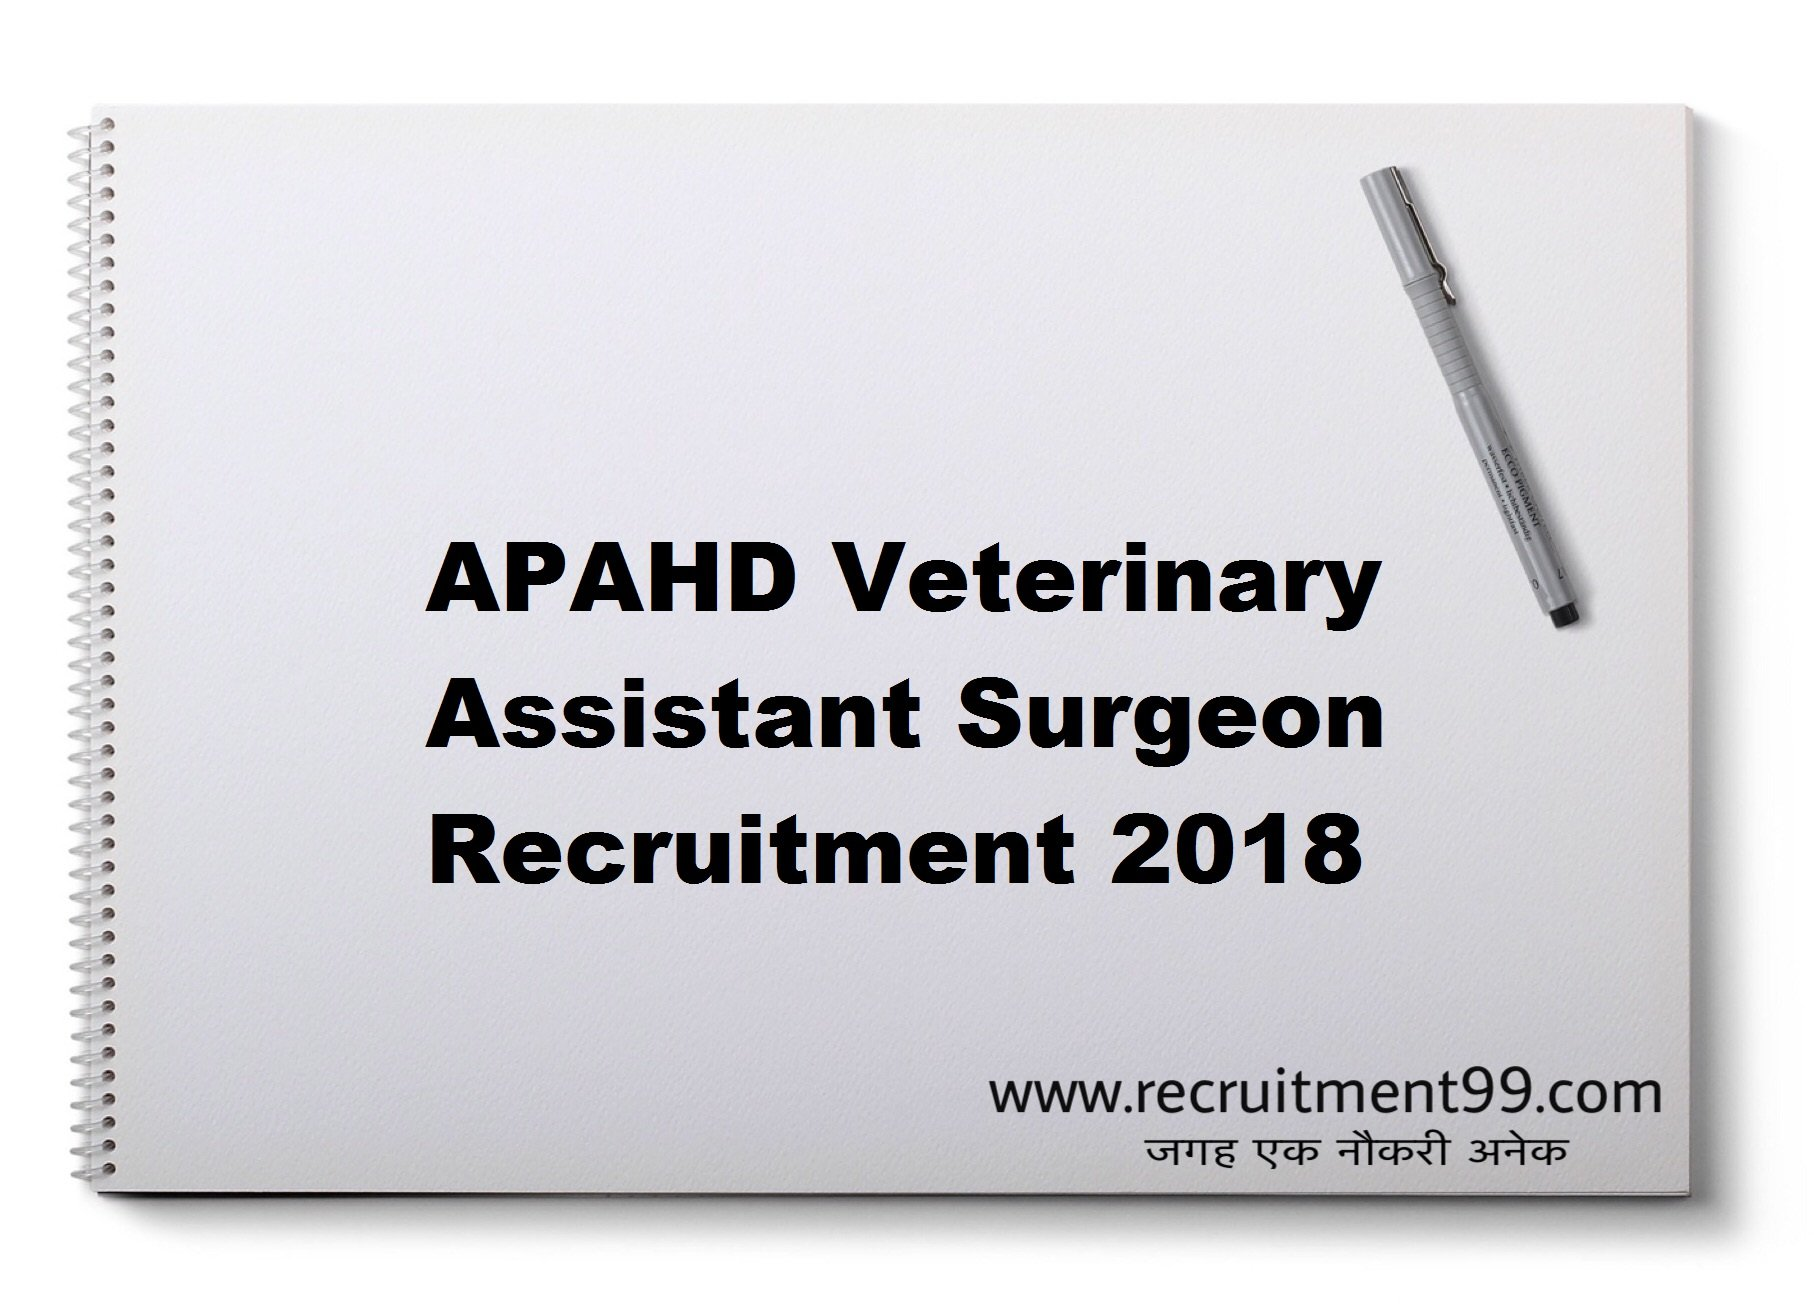 APAHD Veterinary Assistant Surgeon Recruitment Admit Card Result 2018